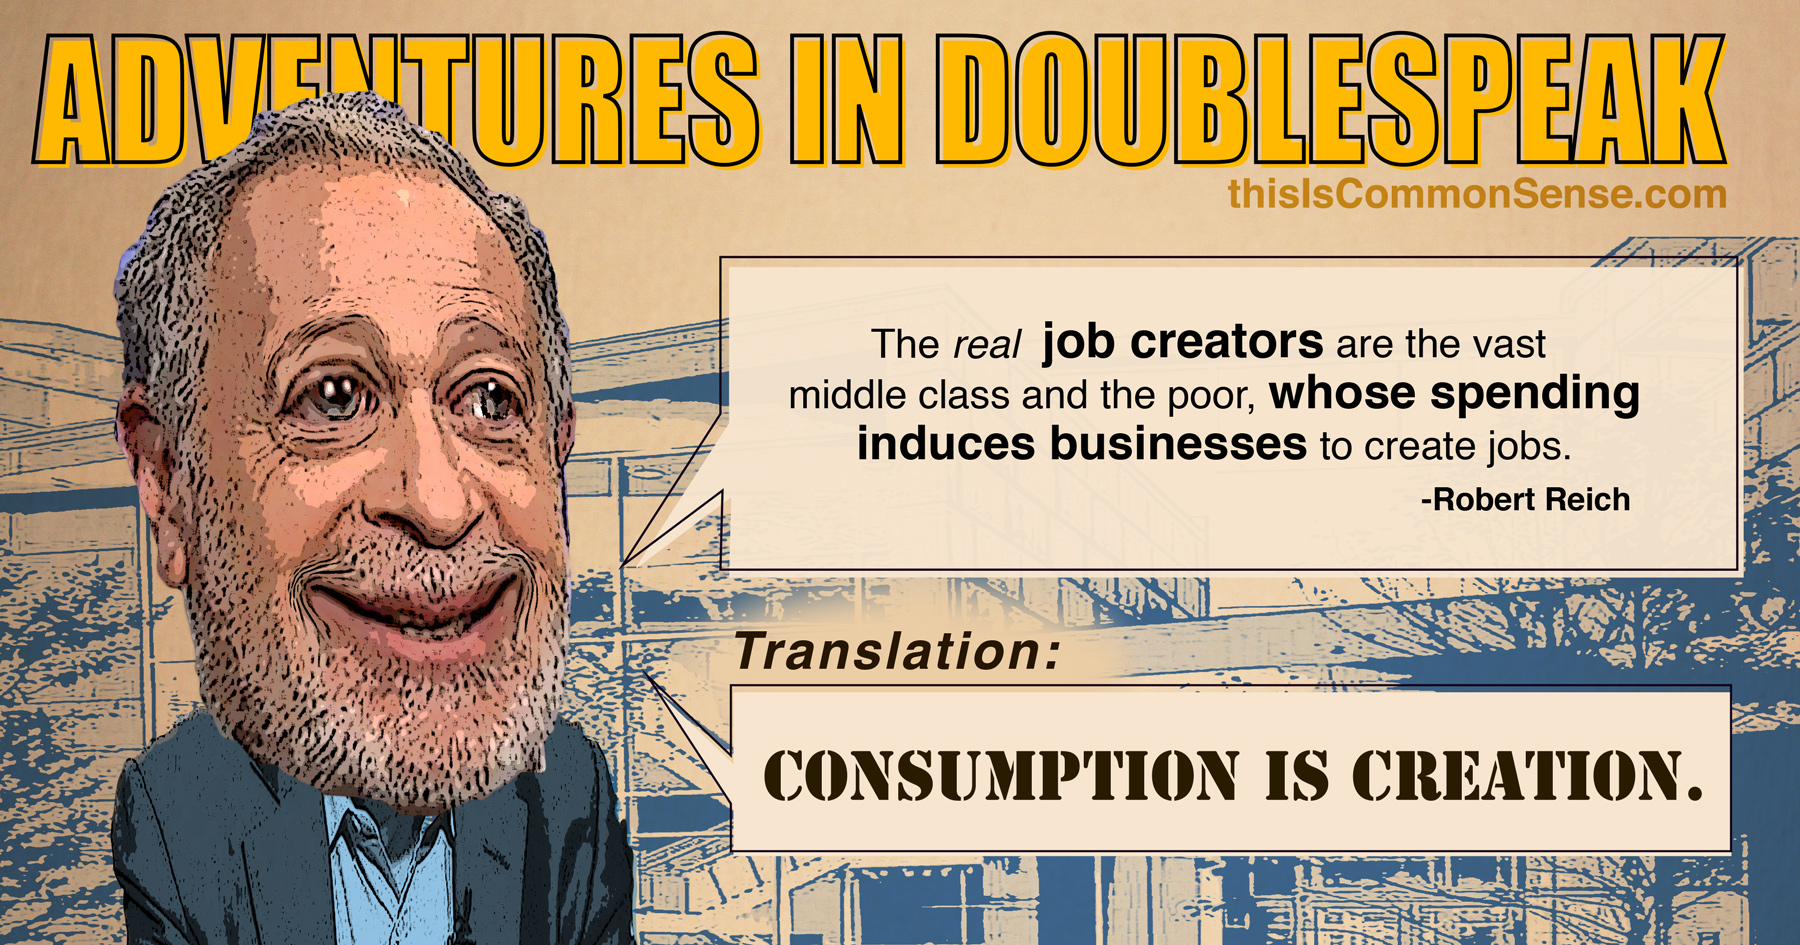 Robert Reich Doublespeak